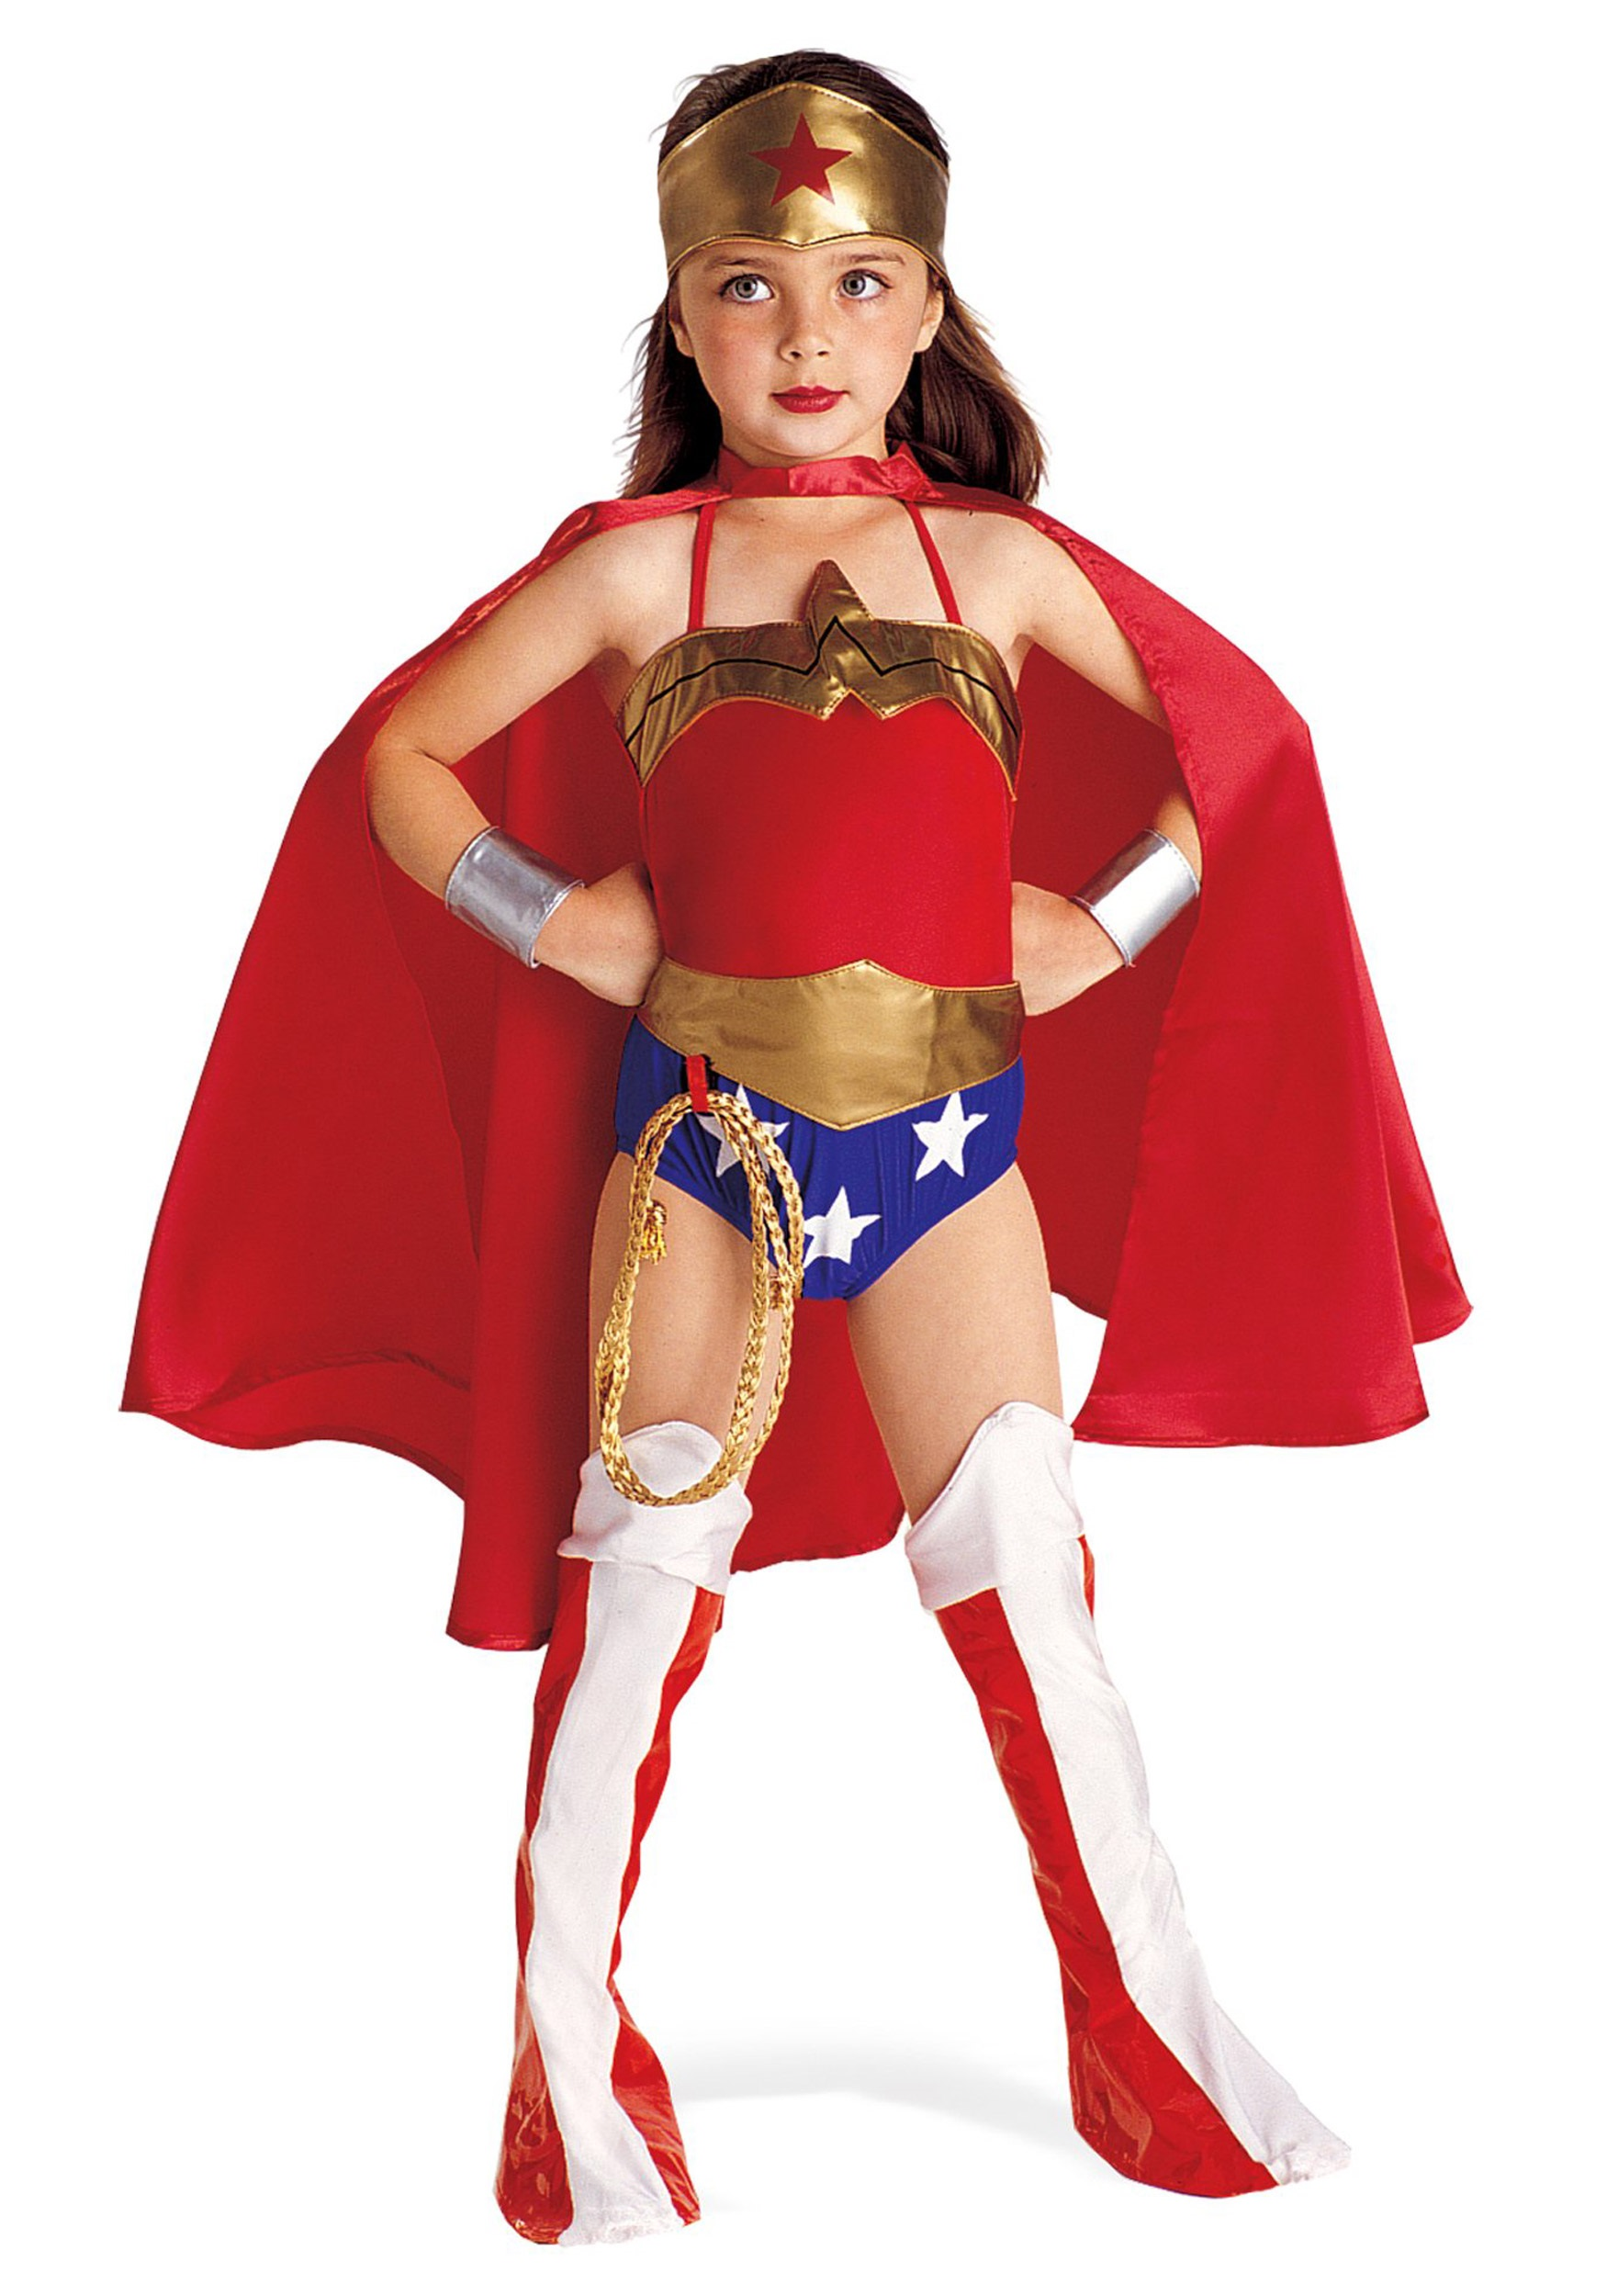 Wonder Woman Costumes & Costume Ideas The world first met Wonder Woman — originally named Suprema — in a DC Comics' imprint in She was intended to have all of the power of Superman, but triumph with love instead of her fists.